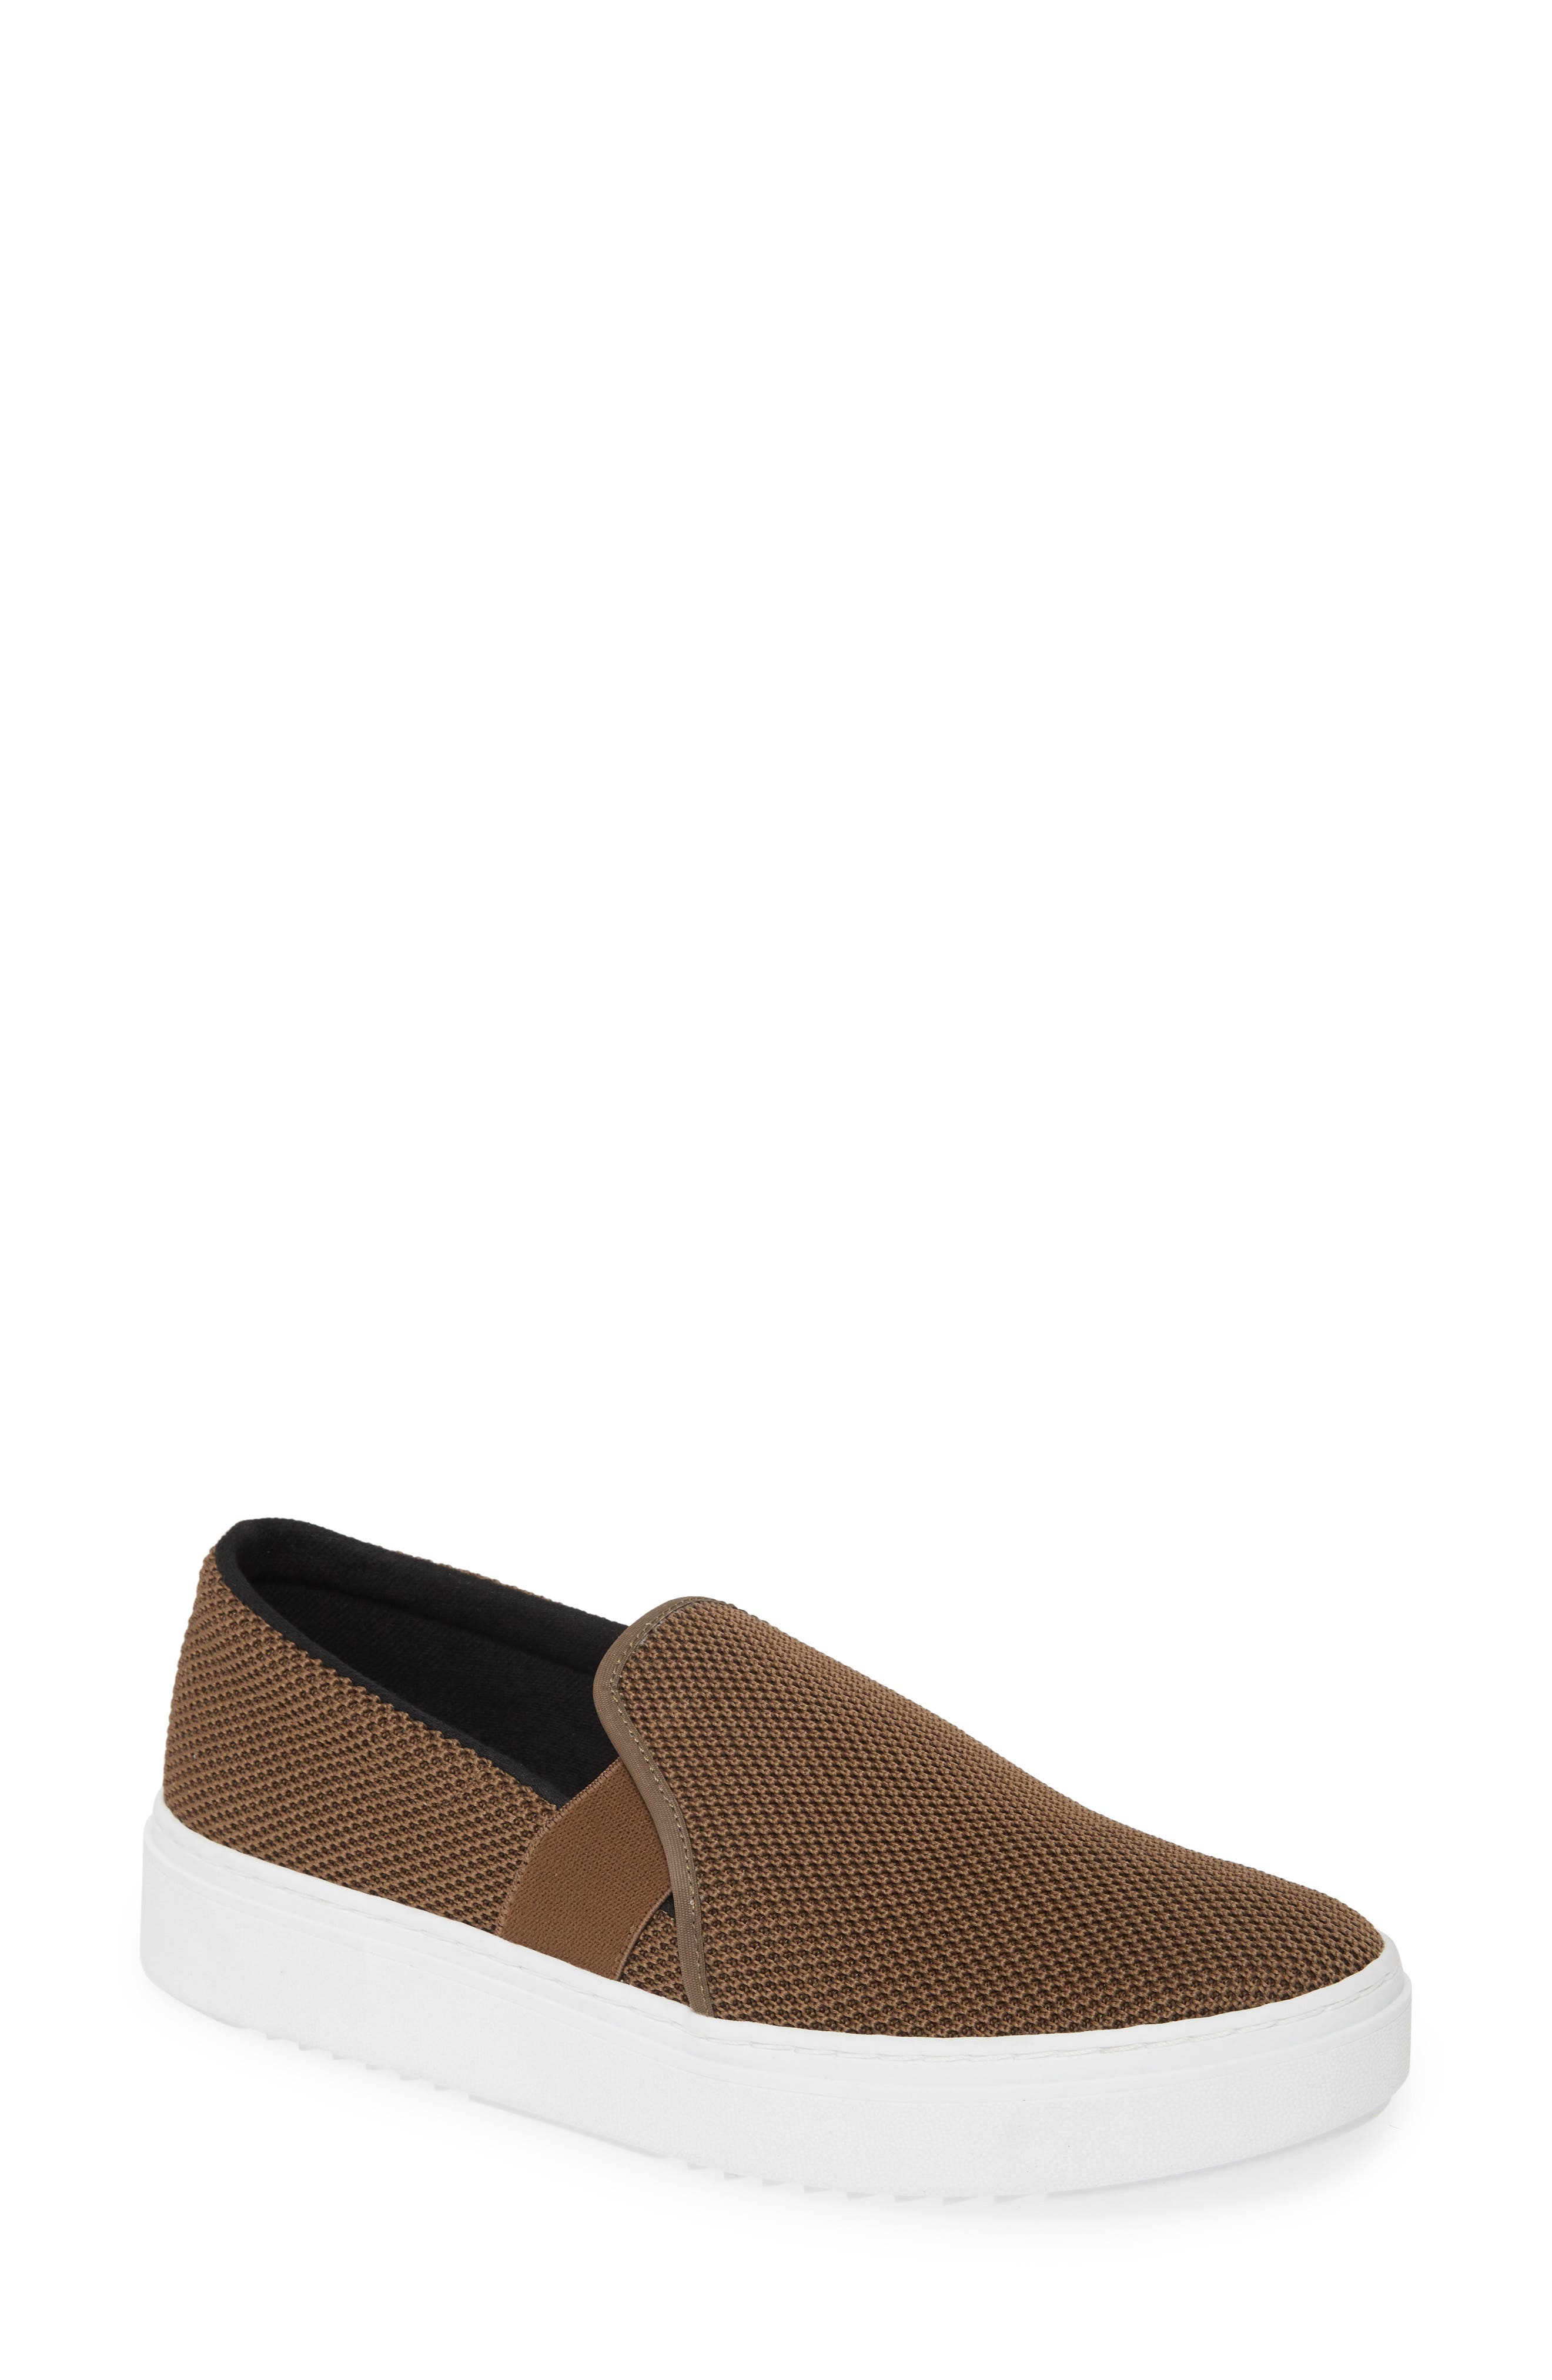 Image of Eileen Fisher Pep Platform Slip-On Sneaker